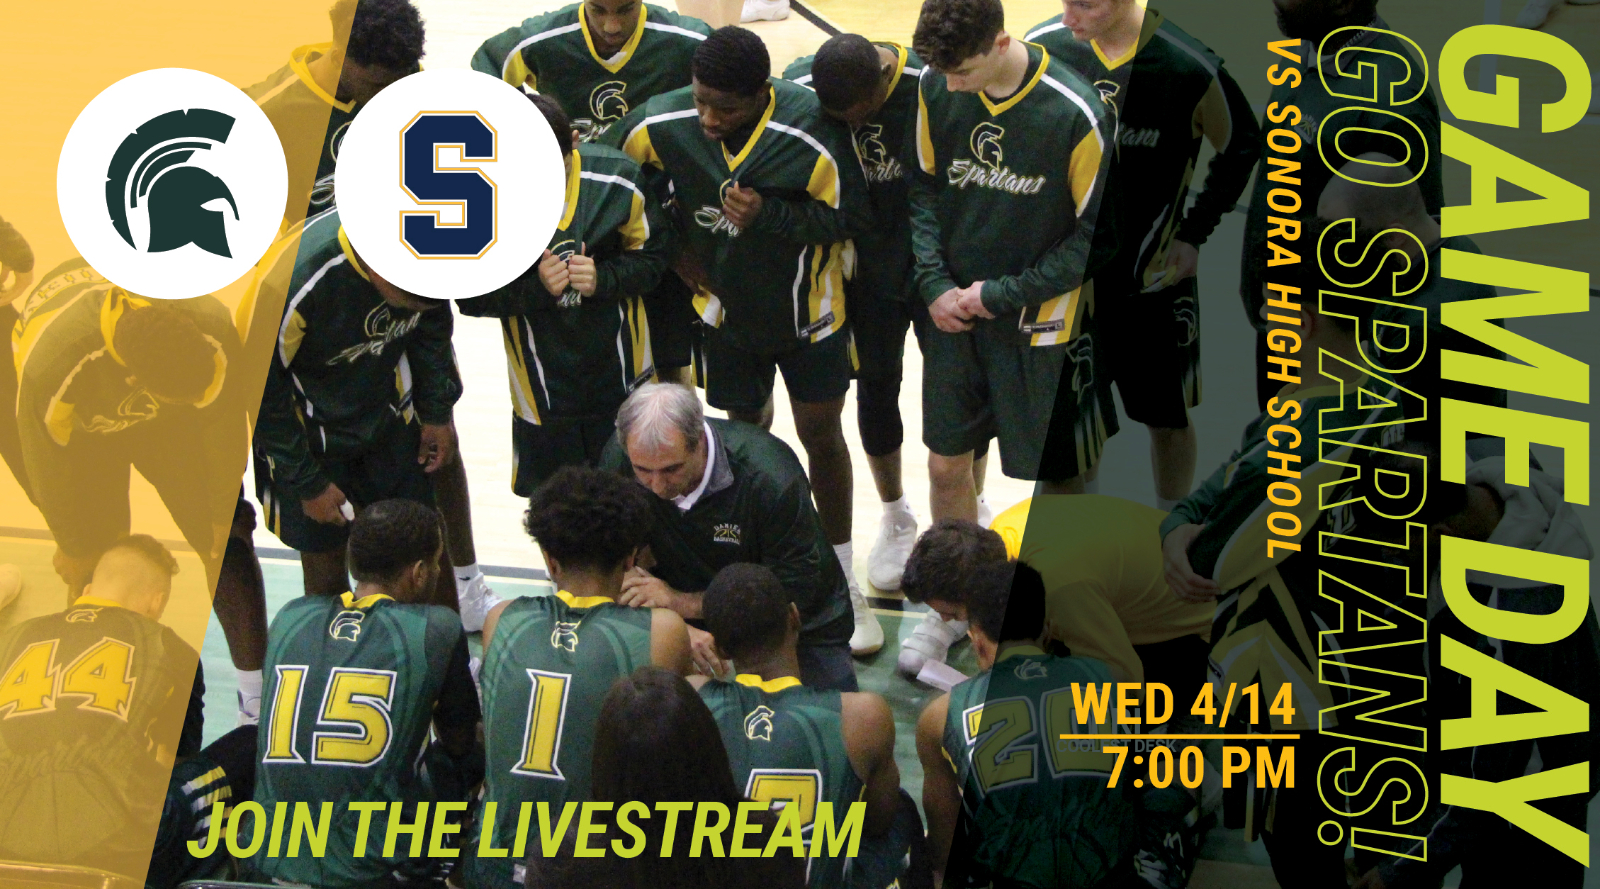 Catch the Basketball Game Live Tonight 4/14 7 PM